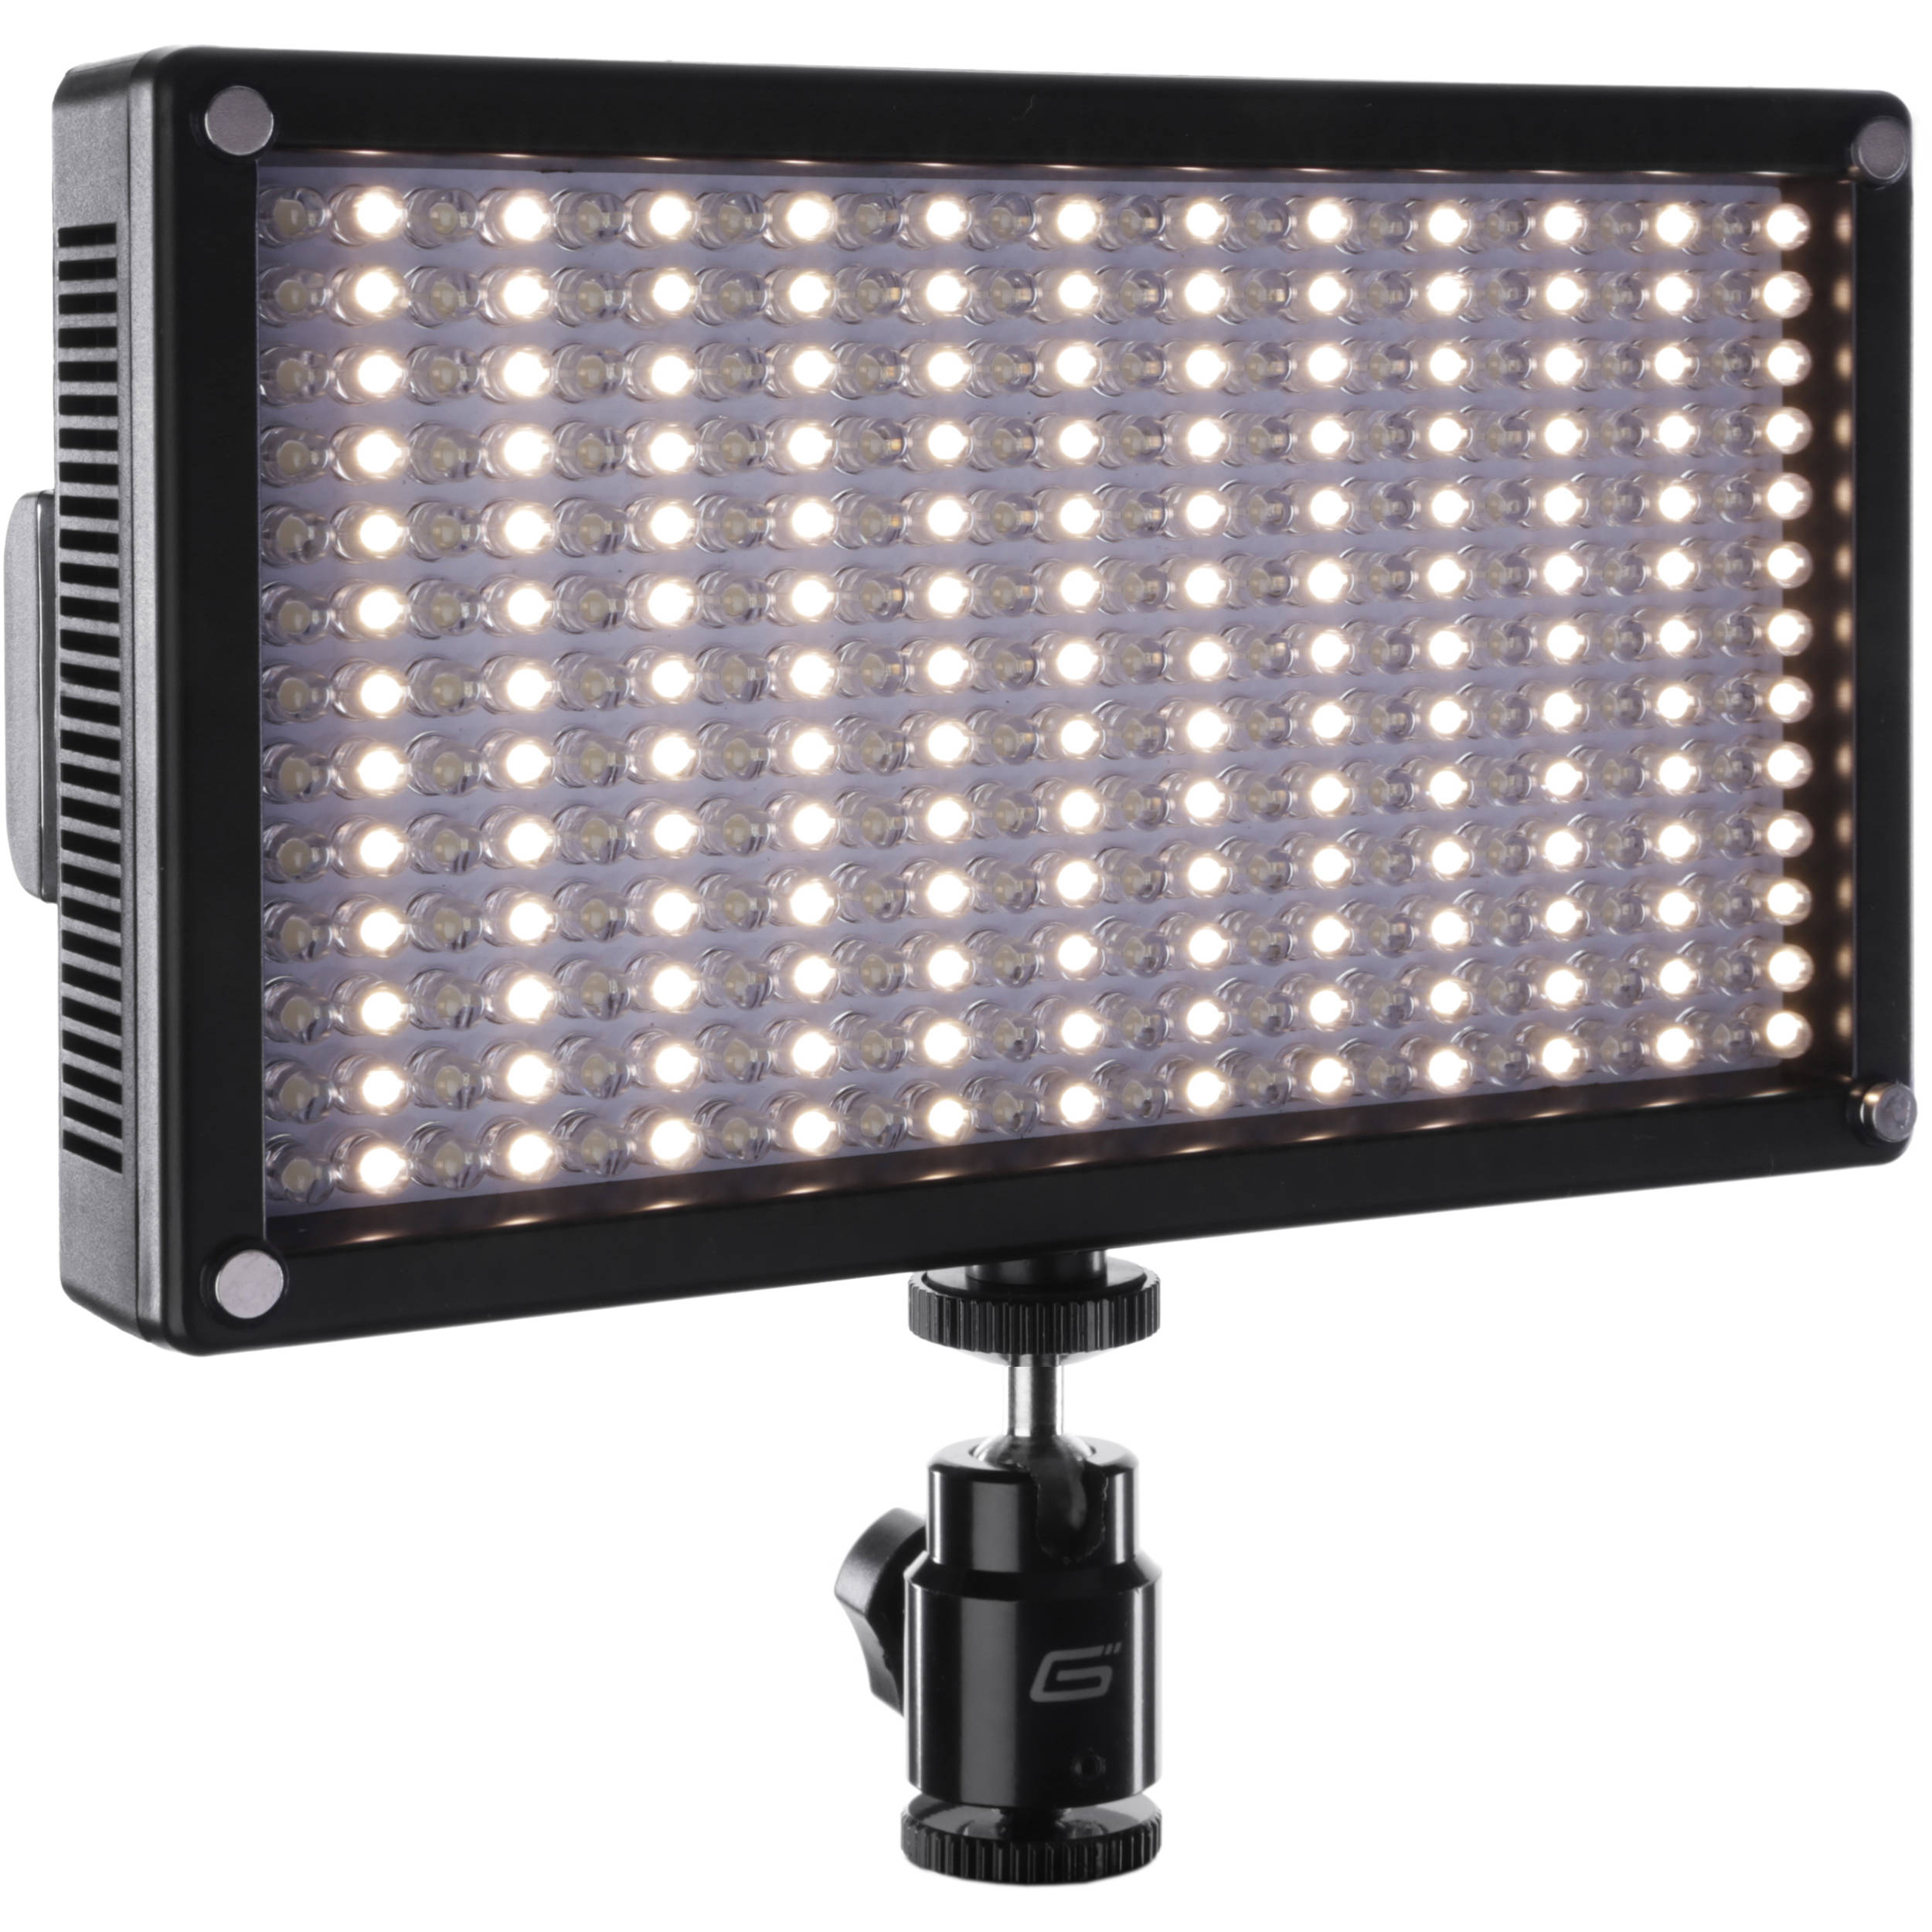 Genaray Led 7100t 312 Variable Color On Camera Bh Ambient Light Controlled Circuit 50 Watt Lamp Wiring